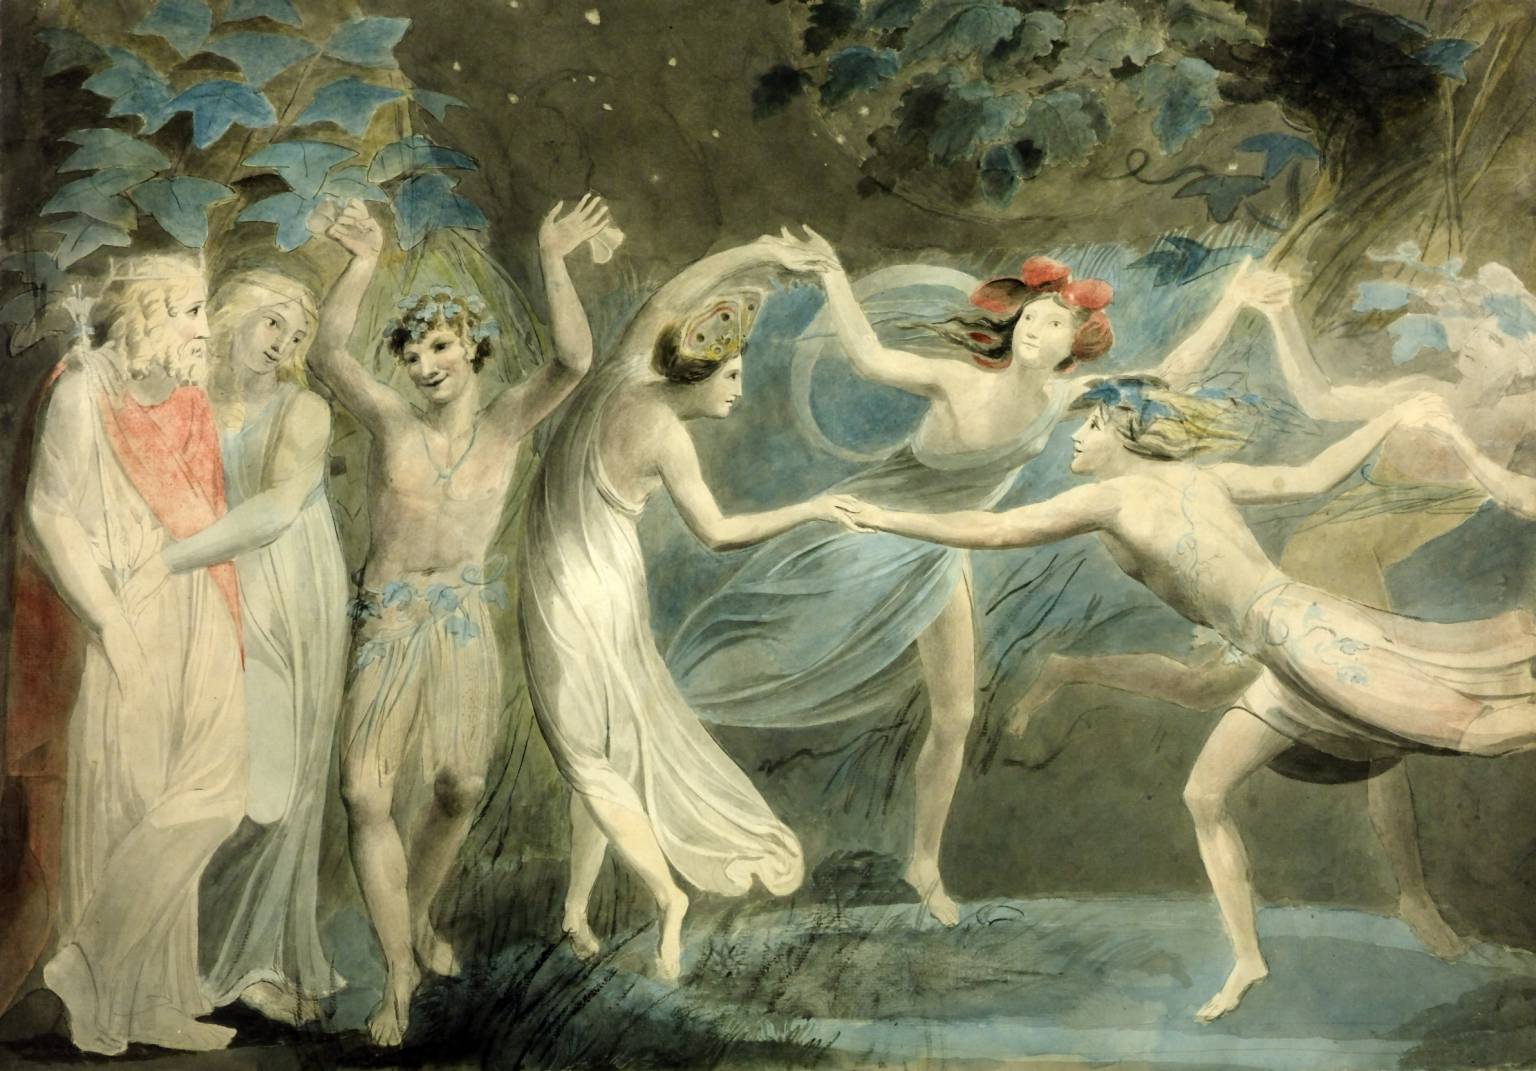 http://upload.wikimedia.org/wikipedia/commons/1/12/Oberon%2C_Titania_and_Puck_with_Fairies_Dancing._William_Blake._c.1786.jpg